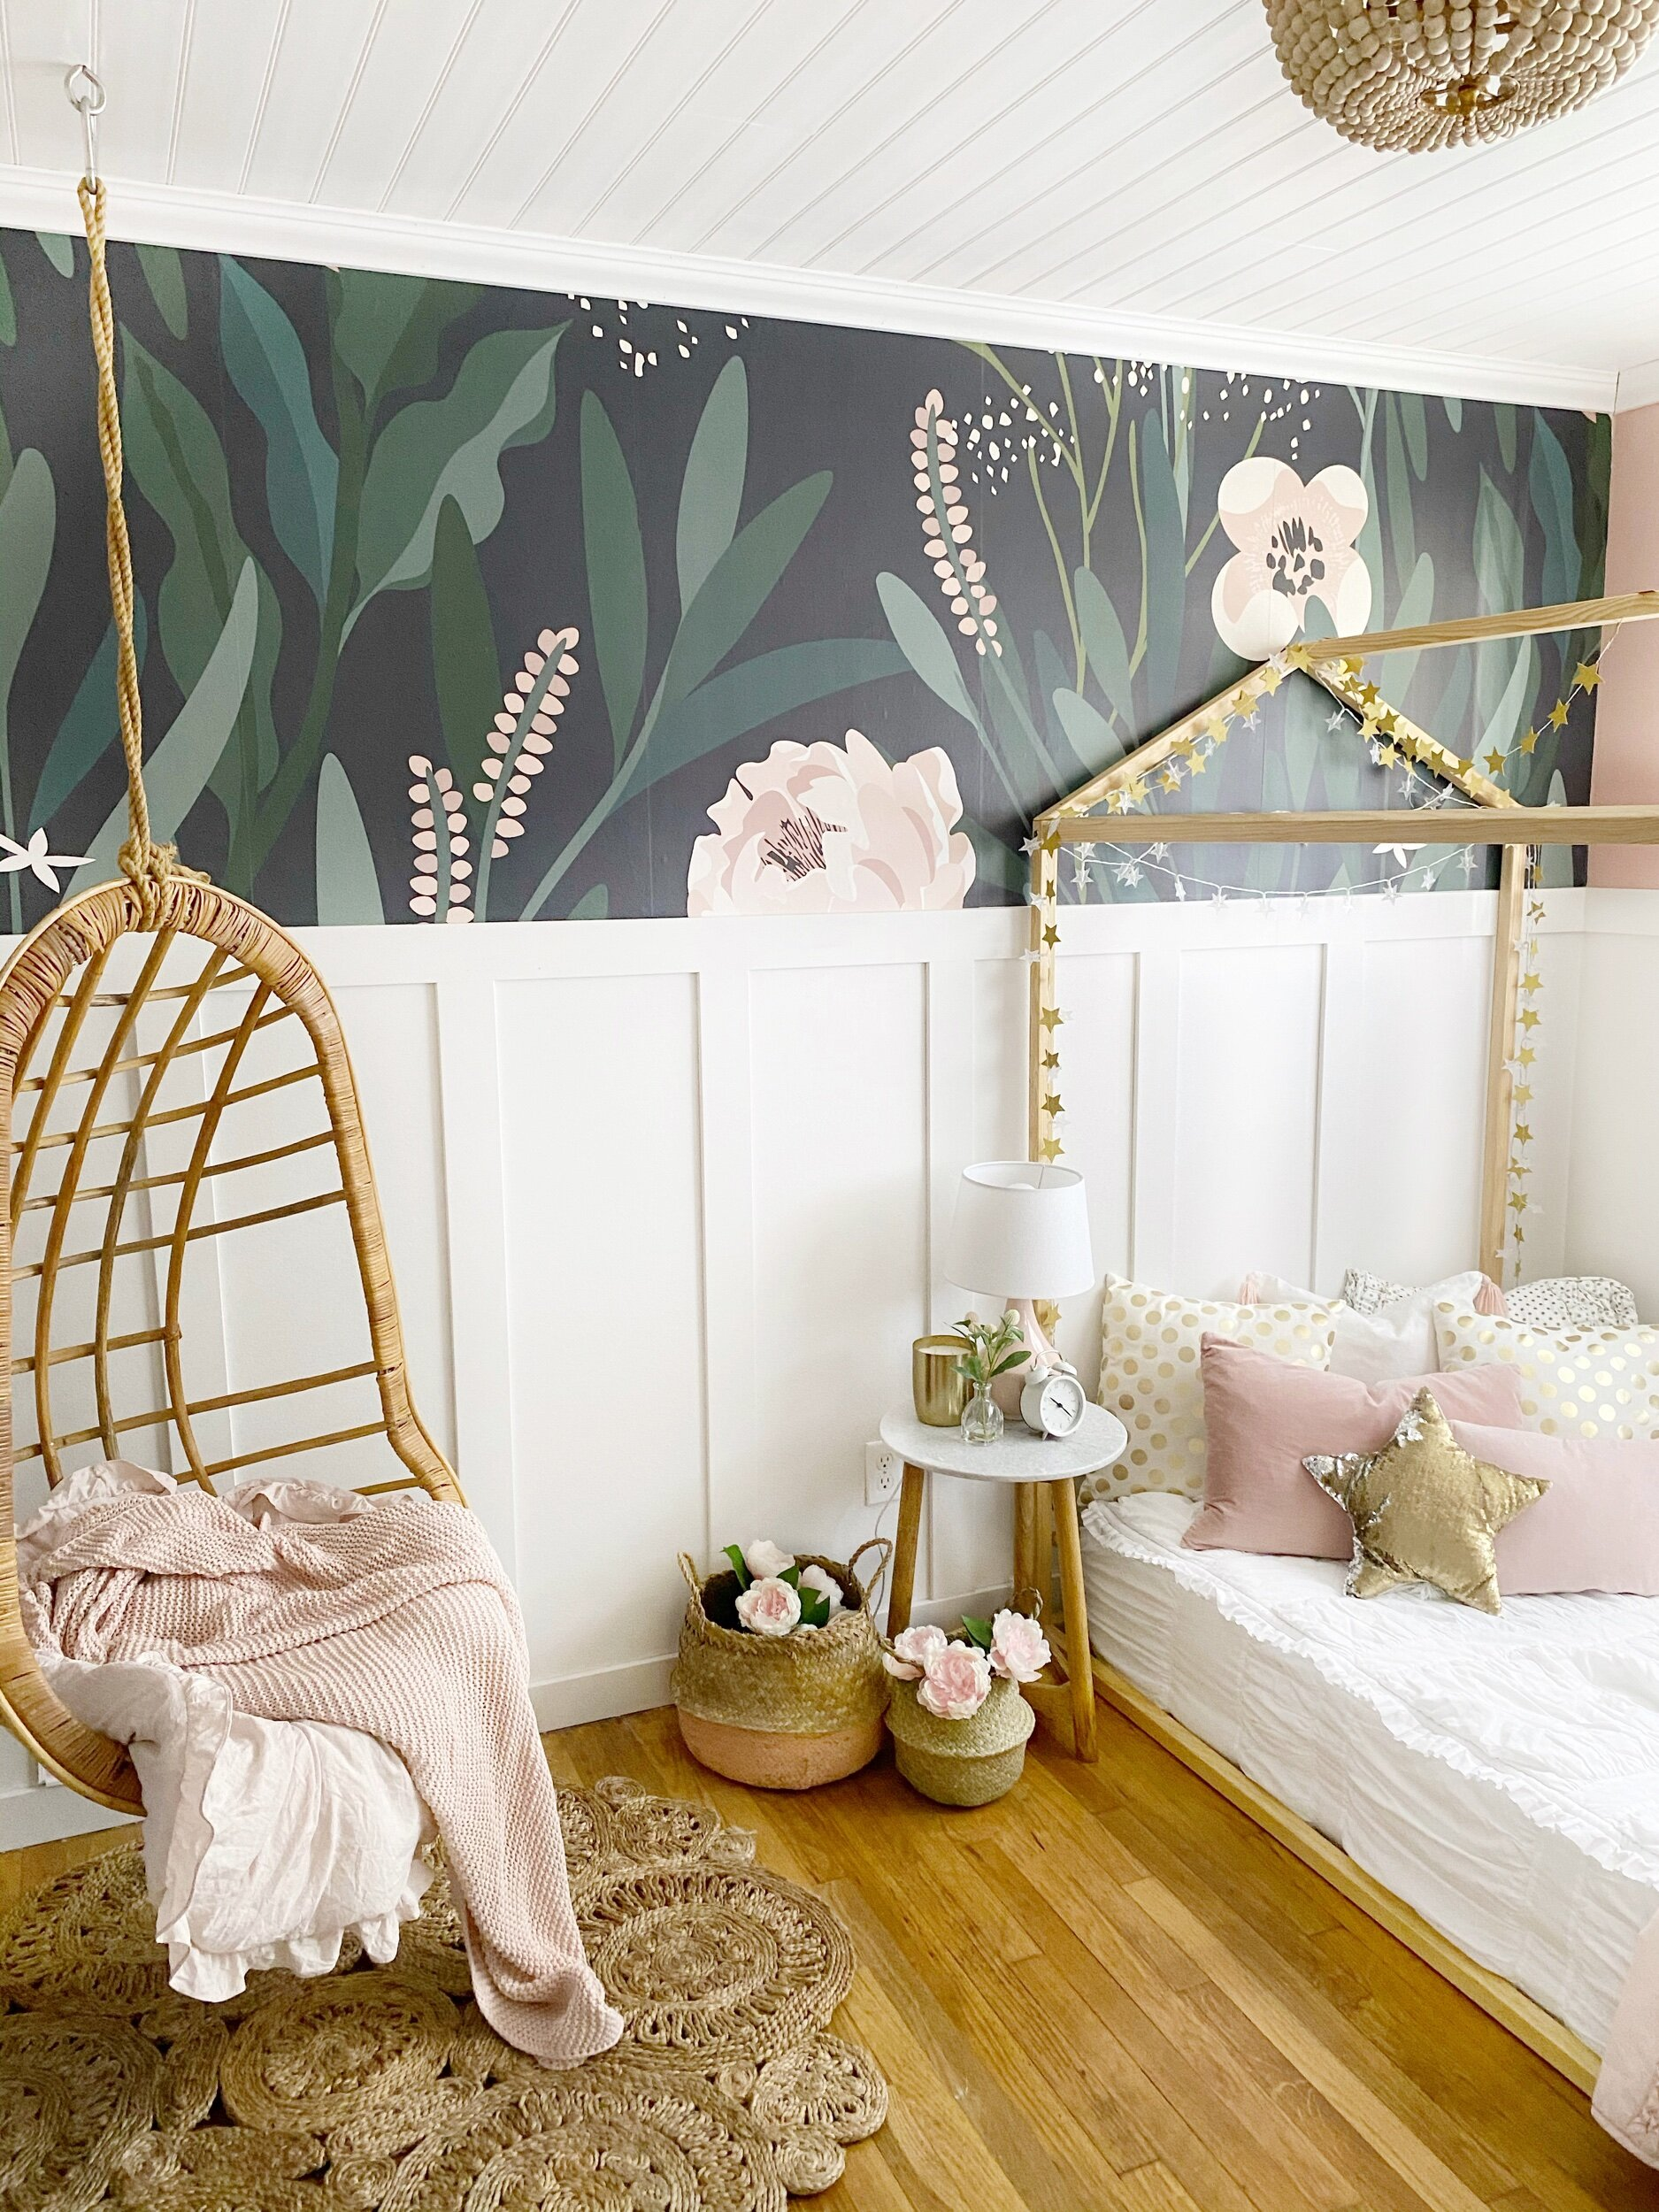 Small Space Living Girls Bedroom Ideas How We Transformed This Room Dreaming Of Homemaking